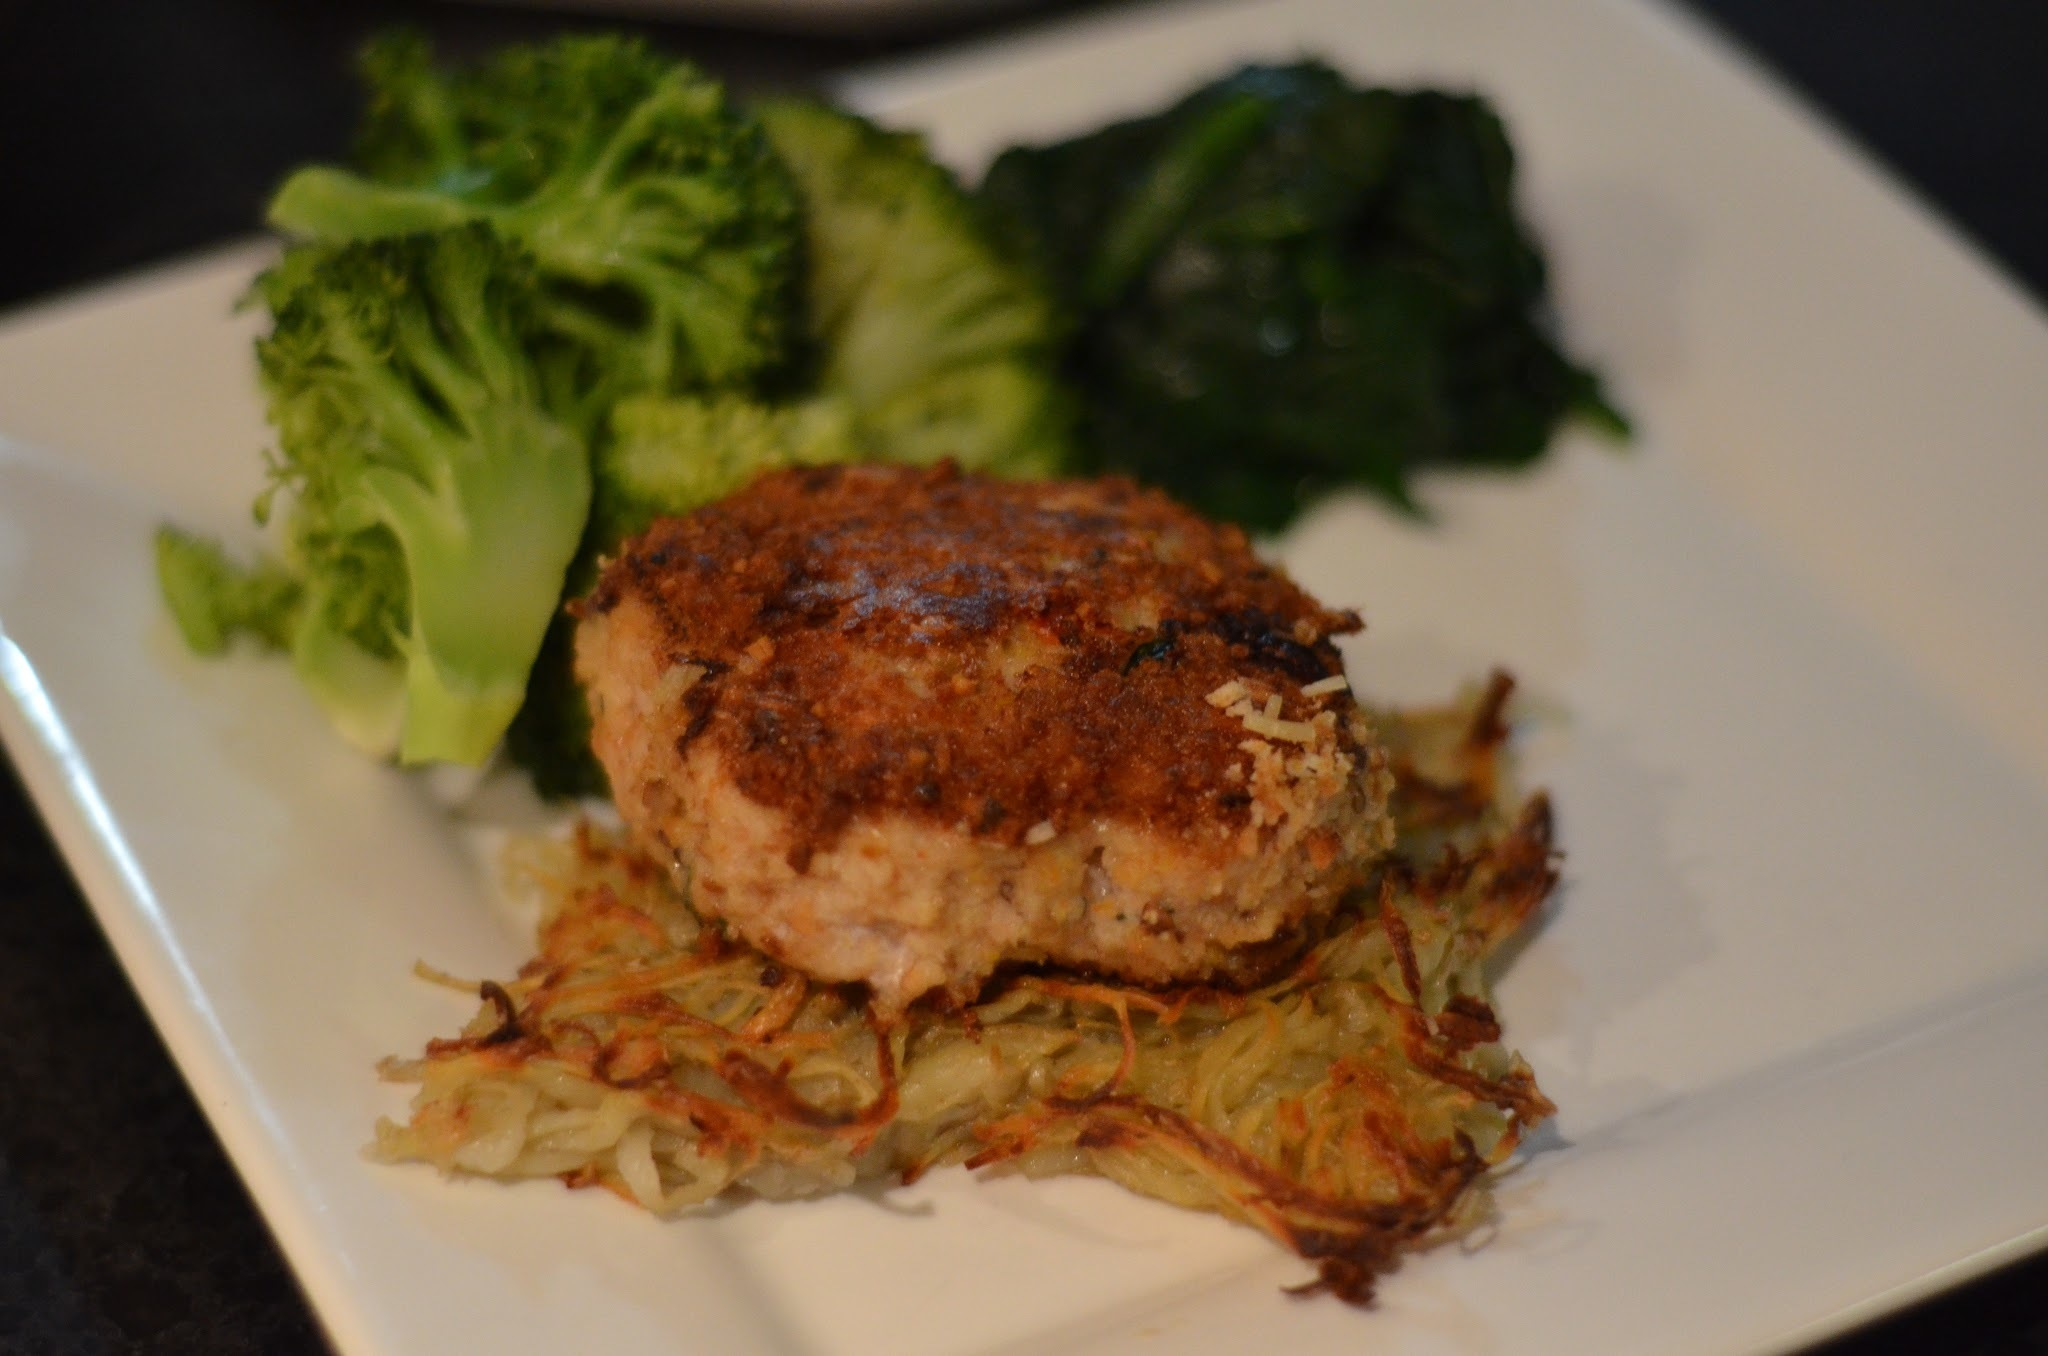 Chicken sundried tomato basil patties with potato rosti